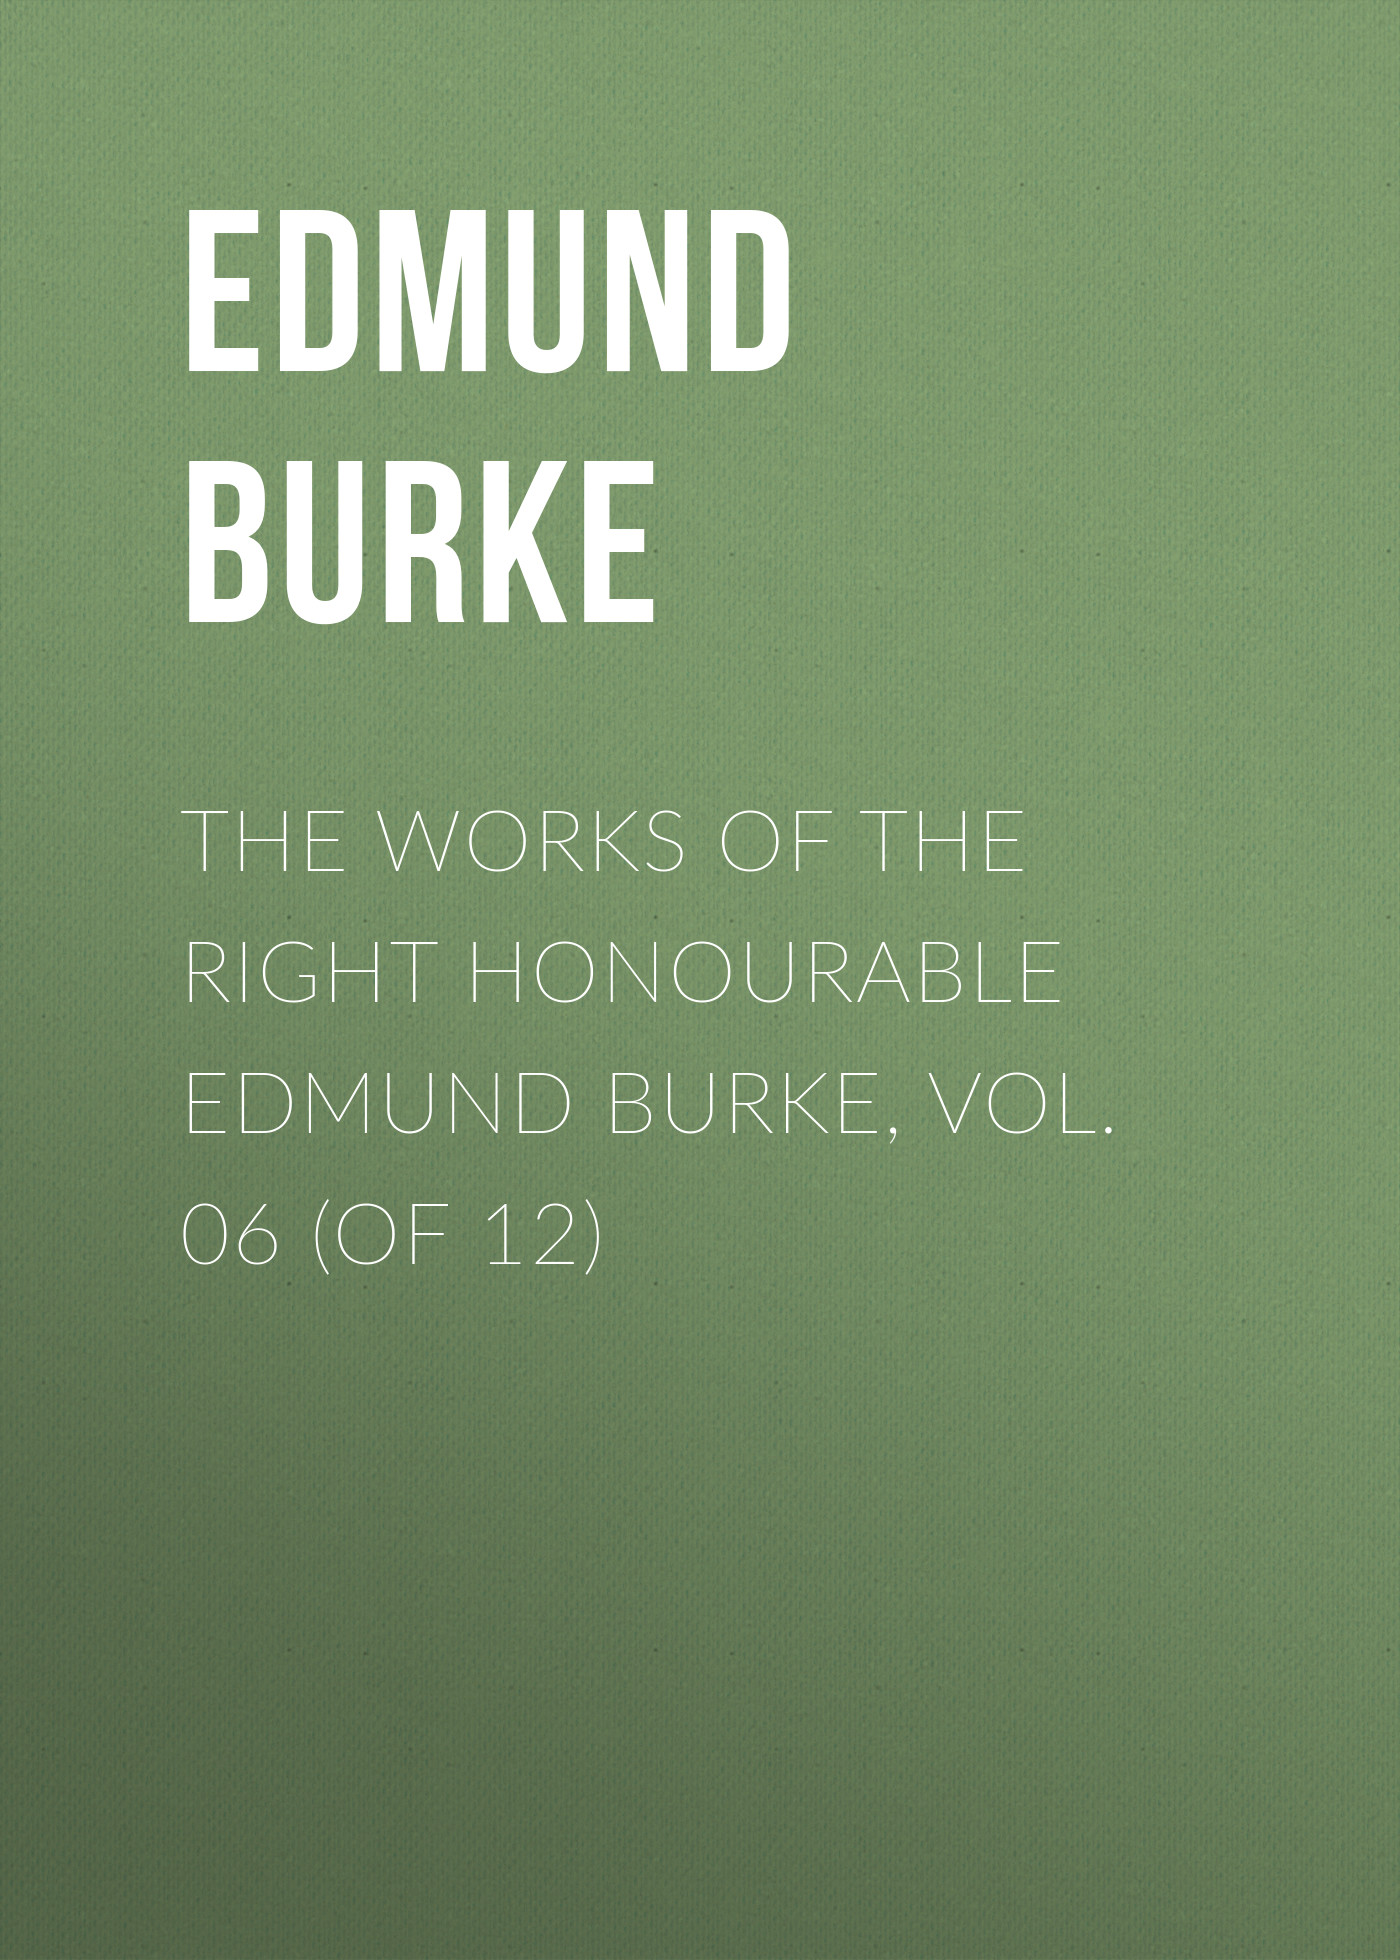 Edmund Burke The Works of the Right Honourable Edmund Burke, Vol. 06 (of 12) edmund burke the works of the right honourable edmund burke vol 02 of 12